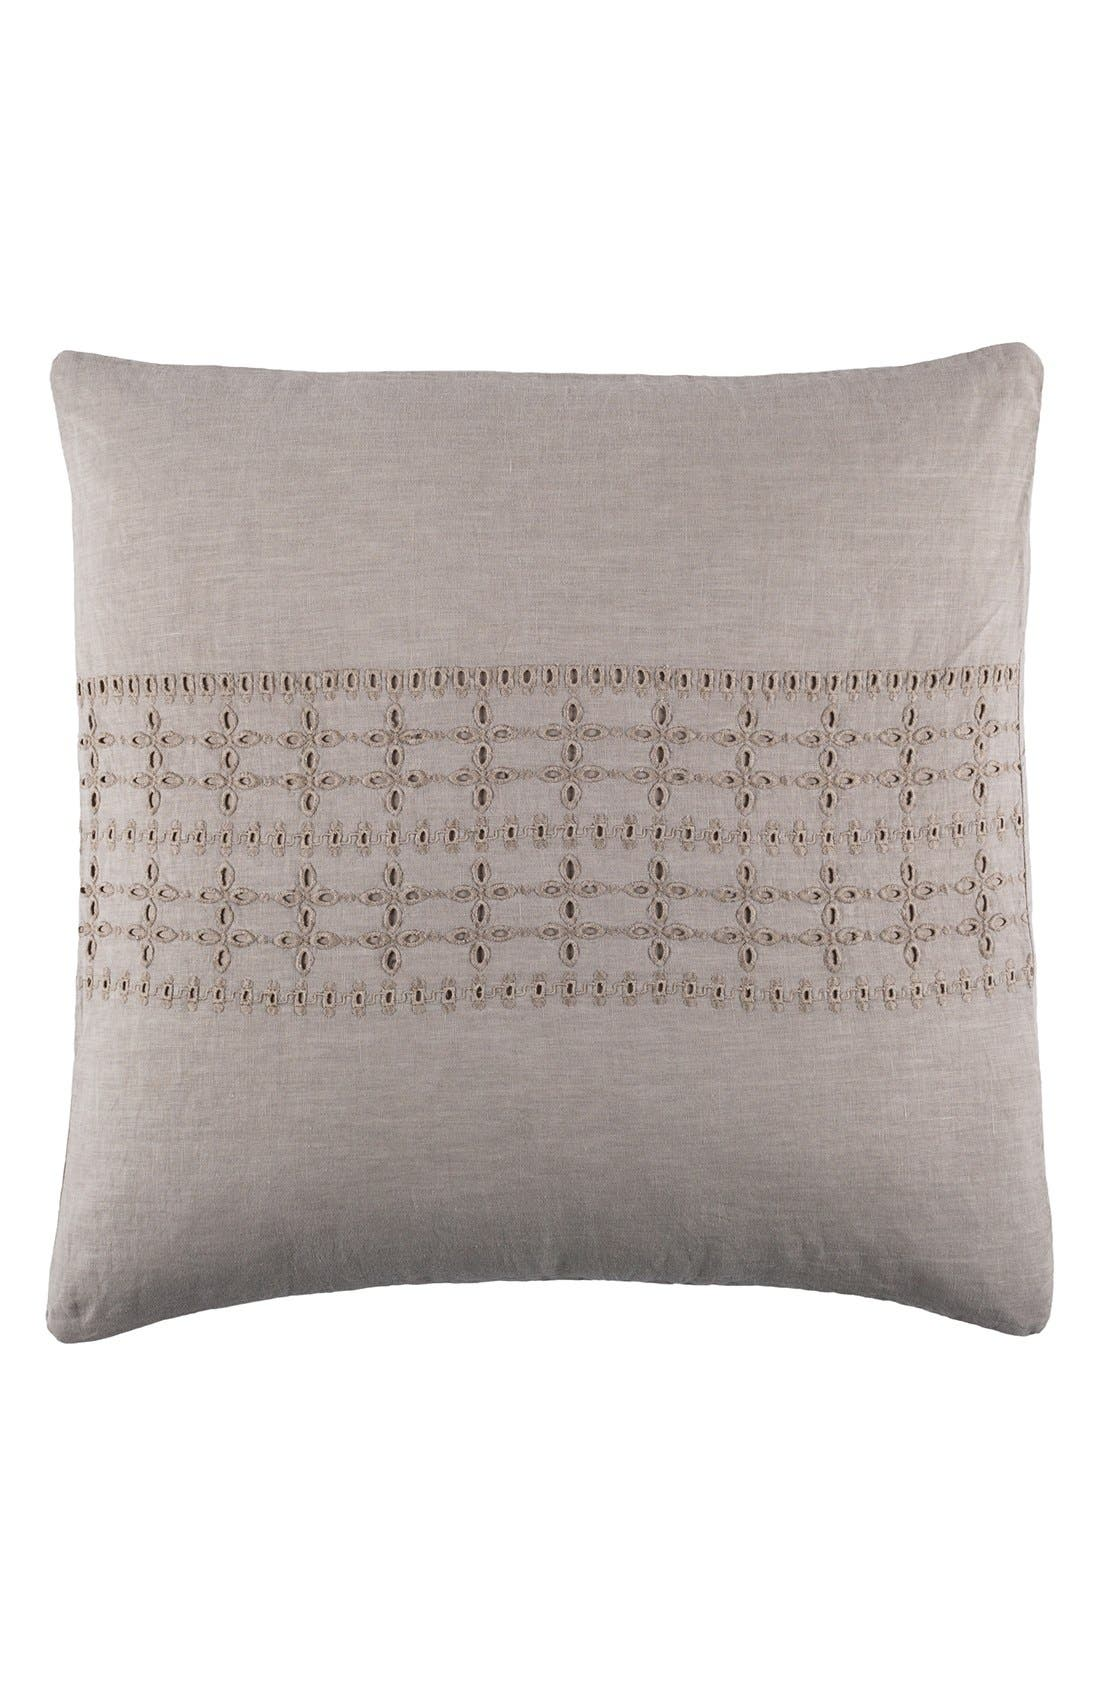 'Layla' Linen Euro Sham,                         Main,                         color, 270